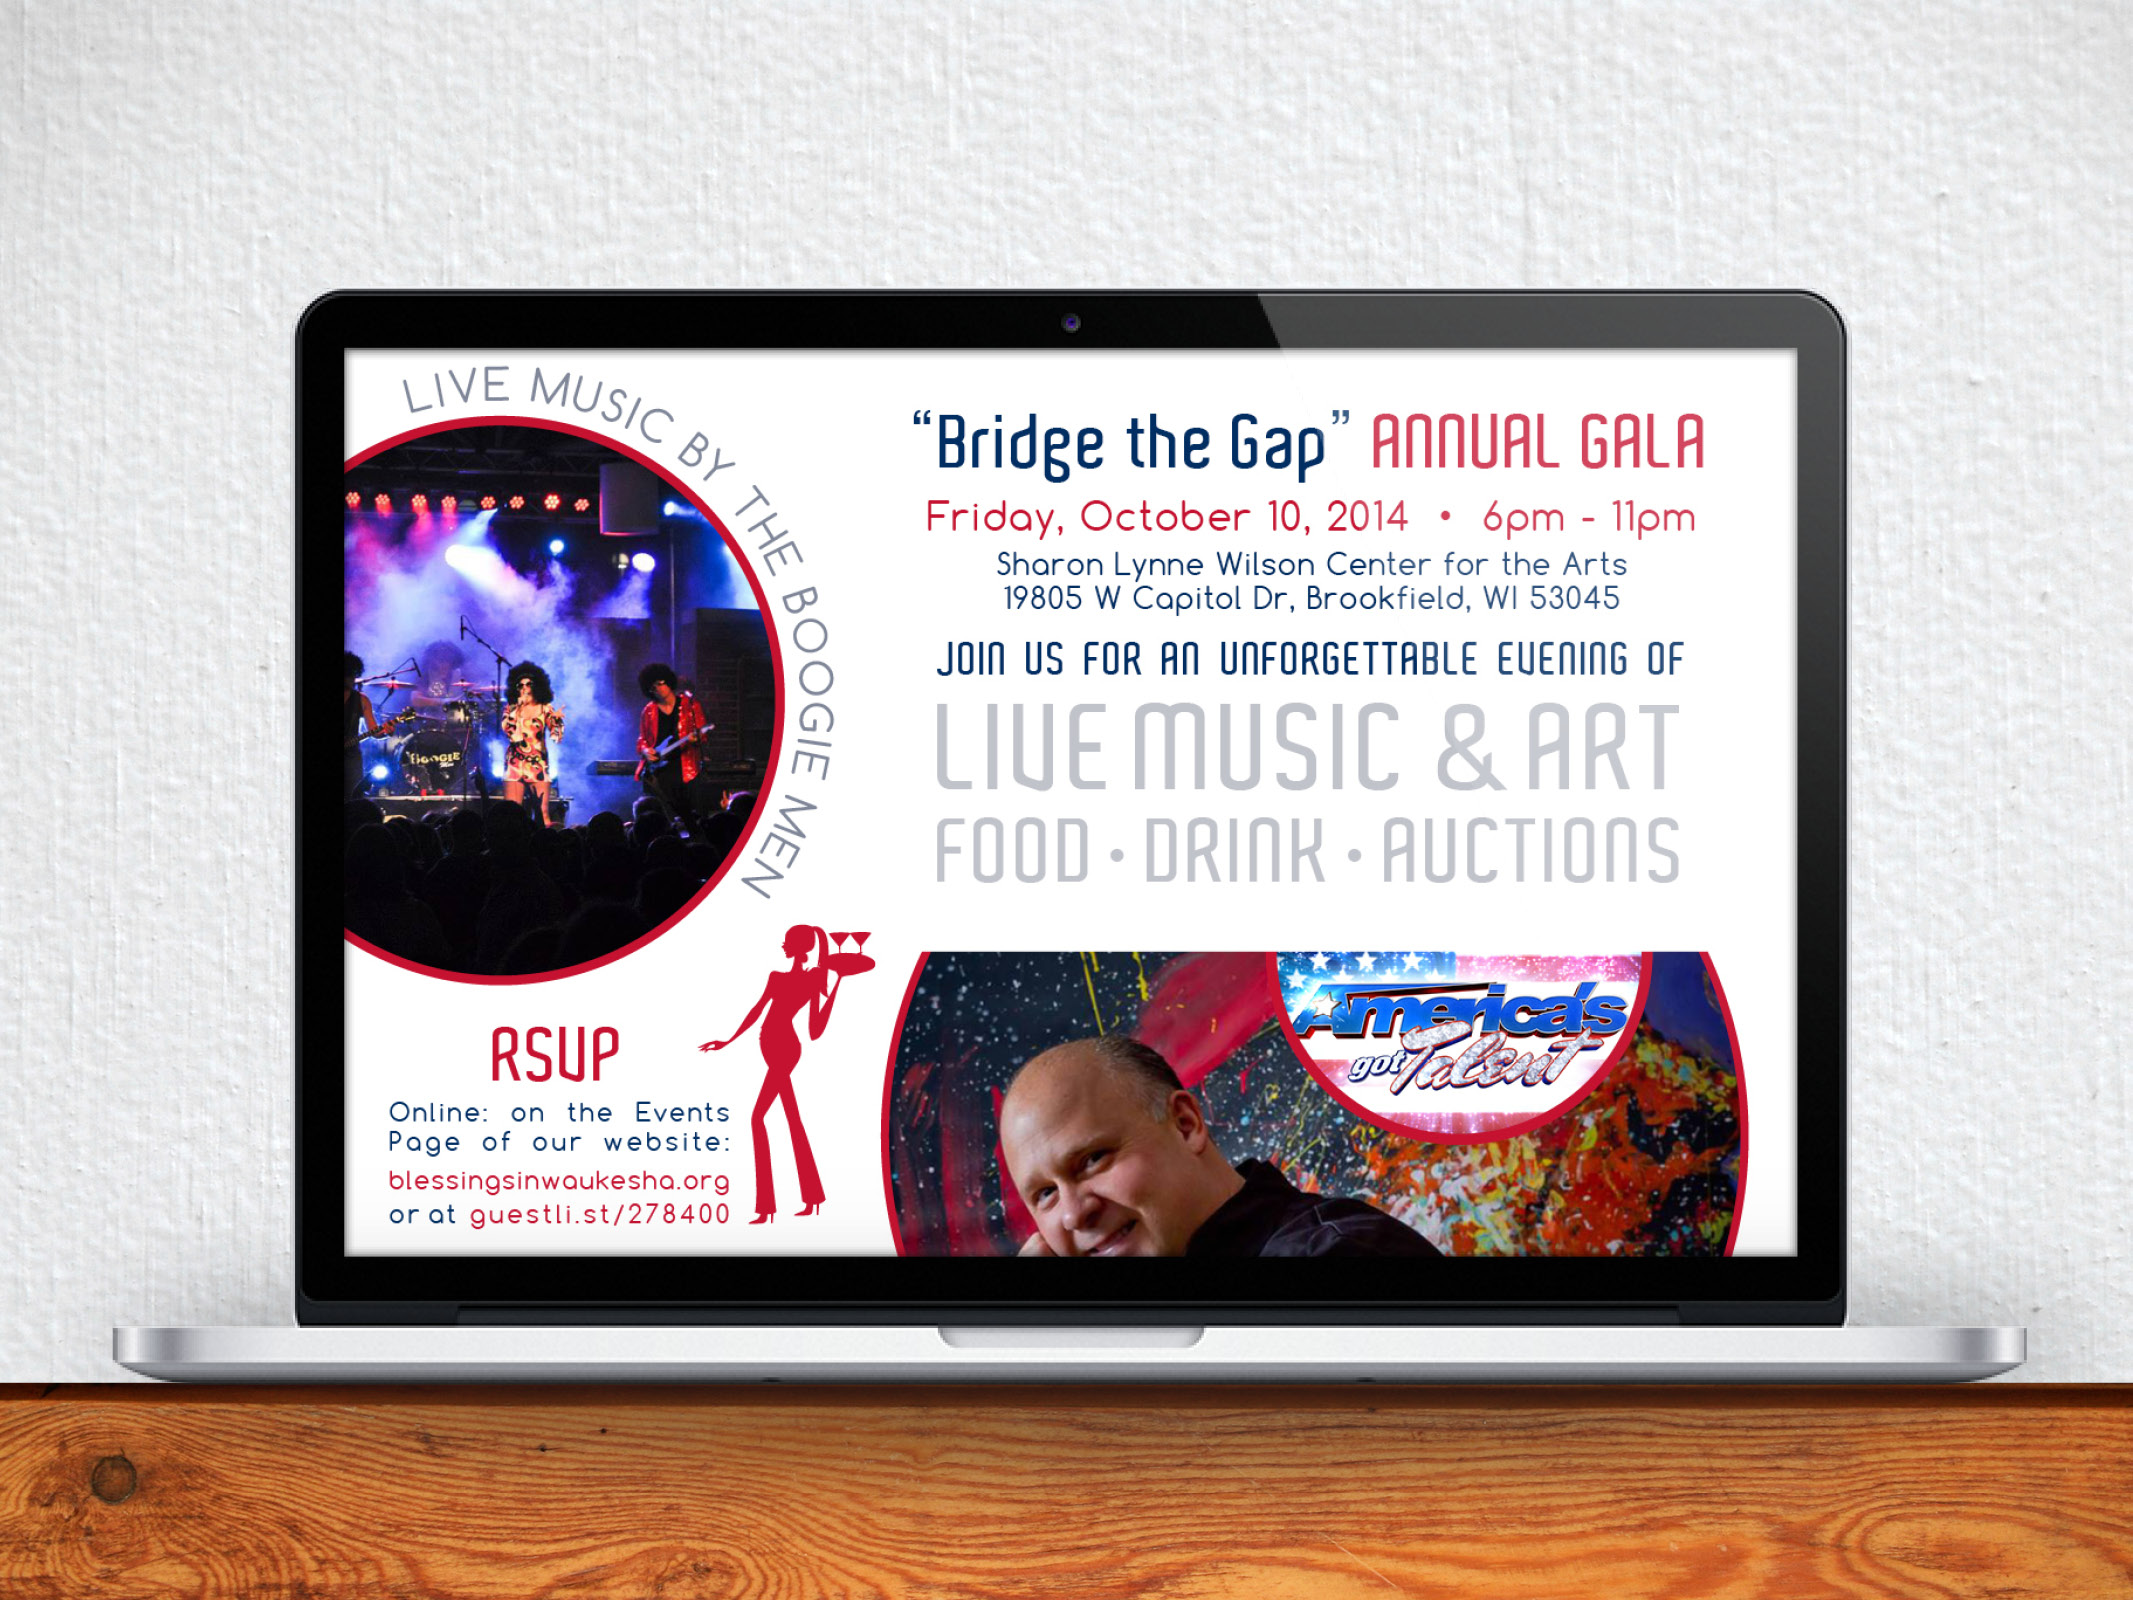 Email Marketing Campaign, Event Logo, and Art Direction